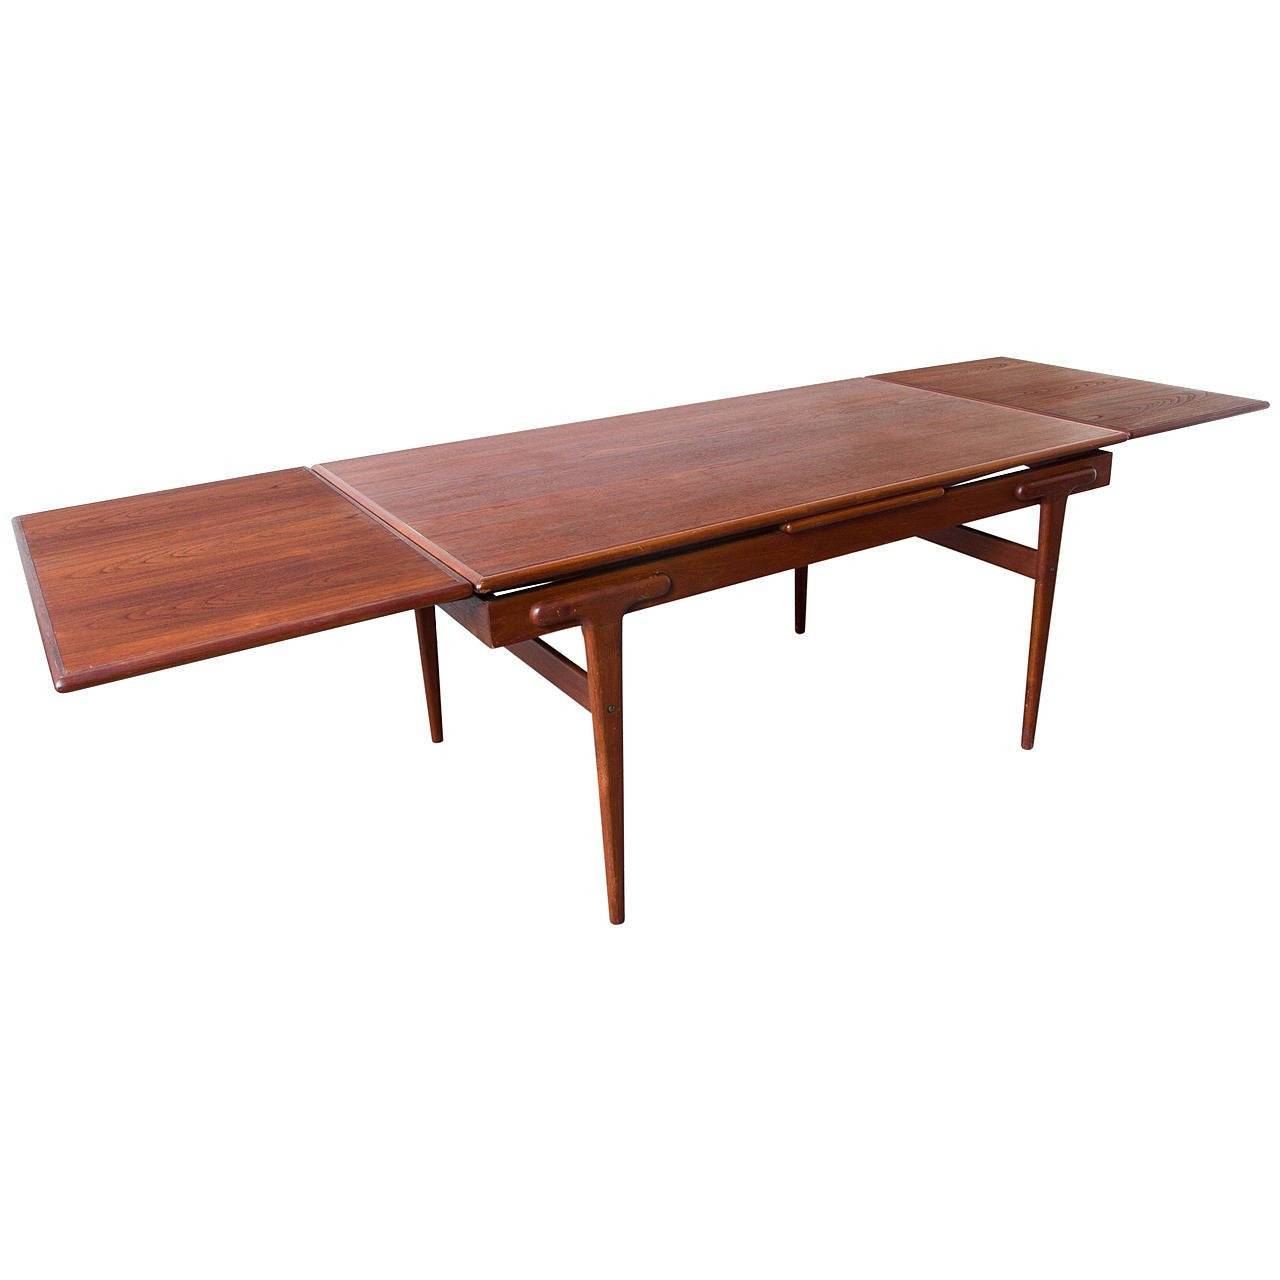 Best ideas about Extension Dining Table . Save or Pin Danish Teak Extension Dining Table For Sale at 1stdibs Now.